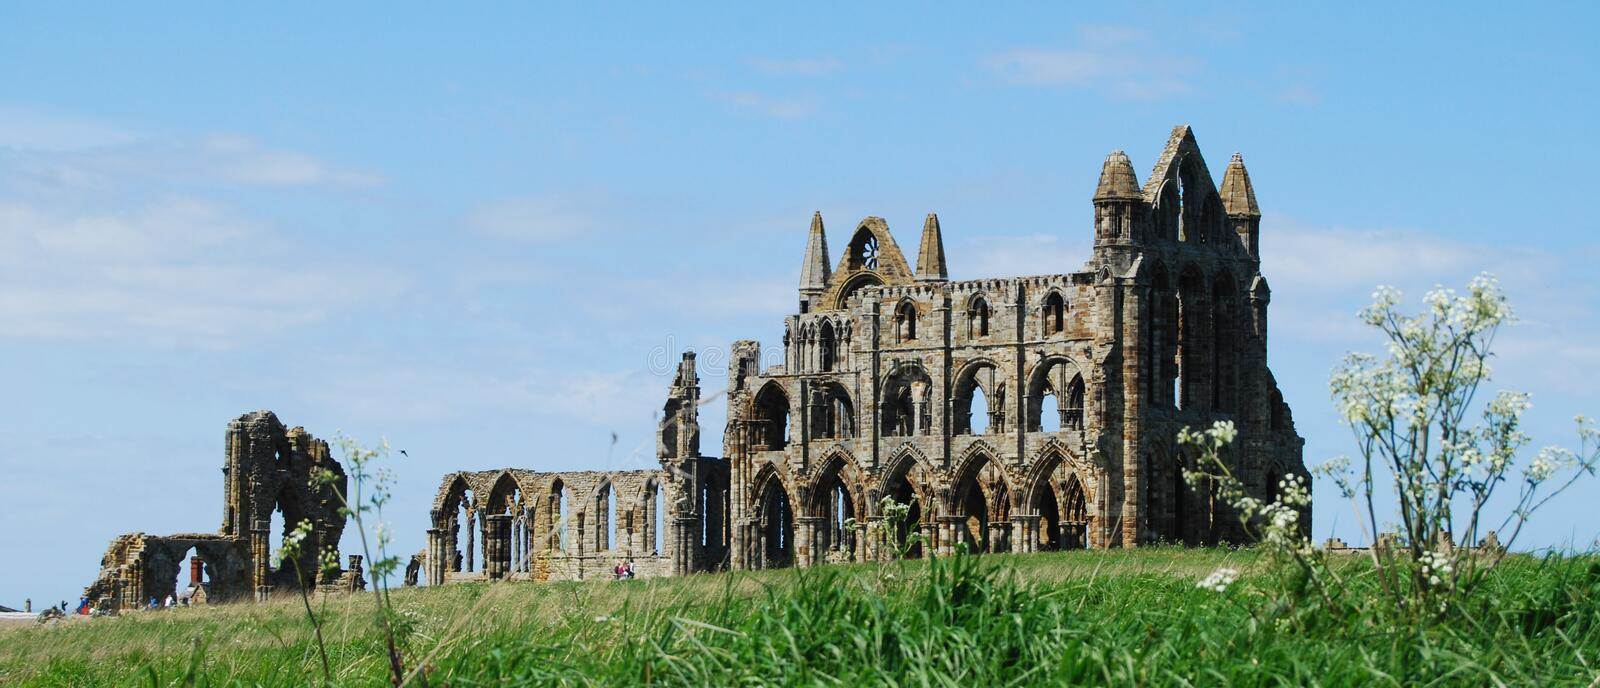 Whitby Abbey, North Yorkshire imagens de stock royalty free